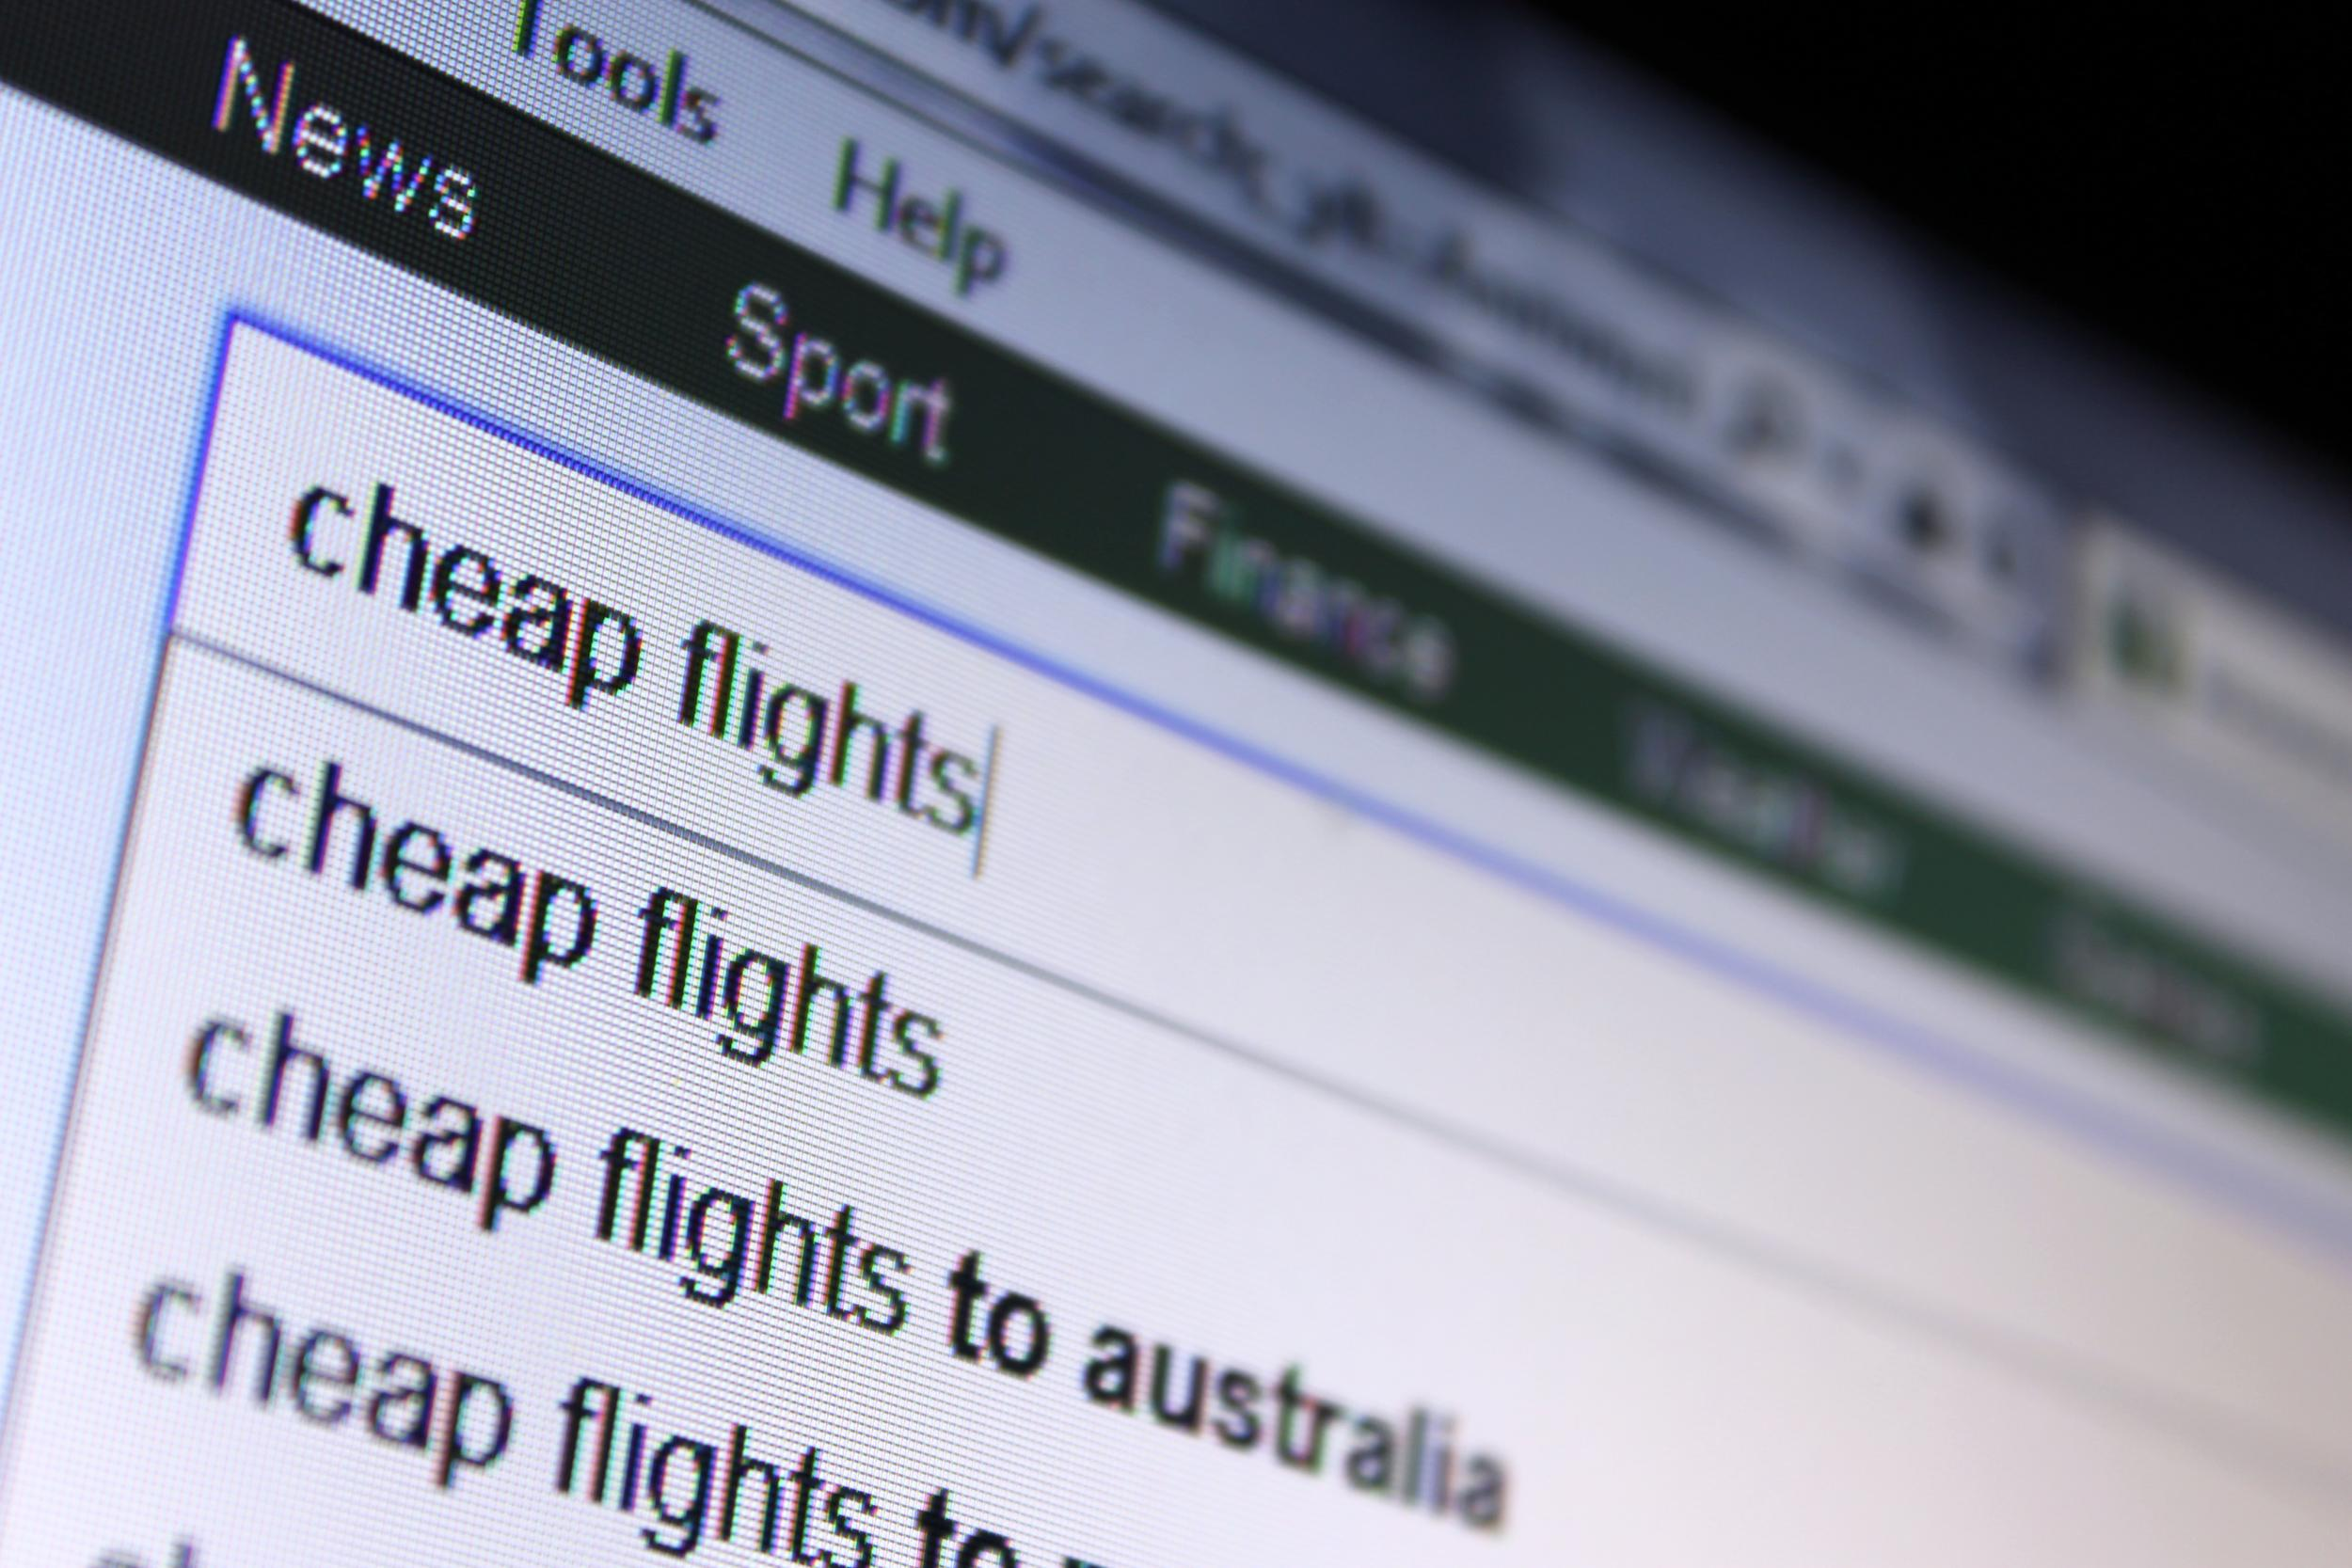 Black Friday Flight And Holiday Deals Potentially Non Existent Warns Which The Independent The Independent